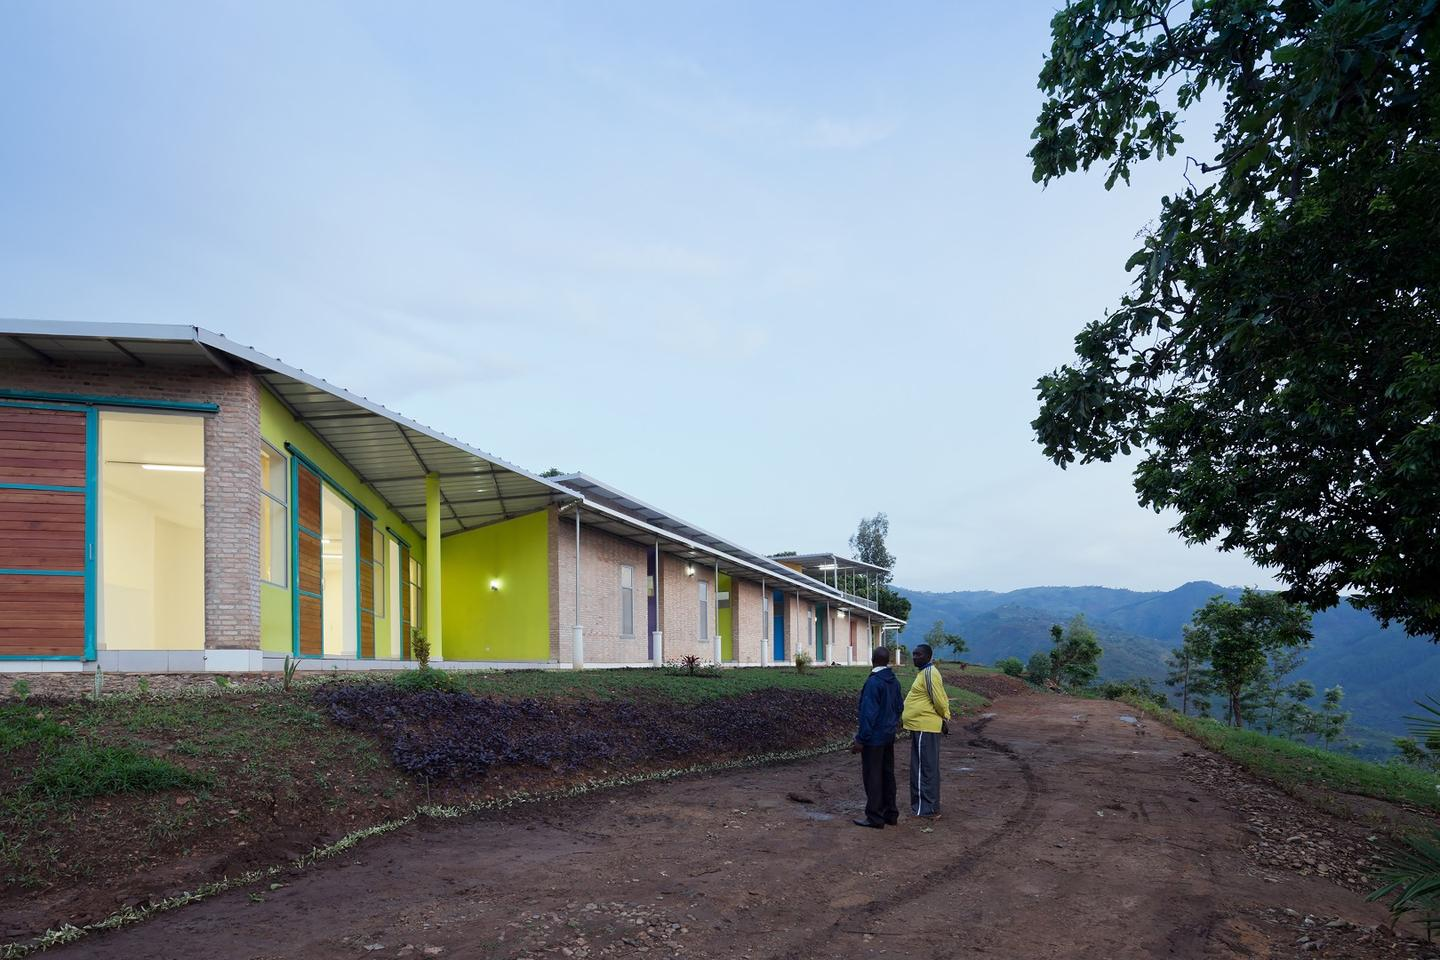 Located in arural village in the Central African country of Burundi, the Village Health Works Staff Housing,byLouise Braverman Architect, serves as off-grid digs for medical staff. The project was a winner in Category Two